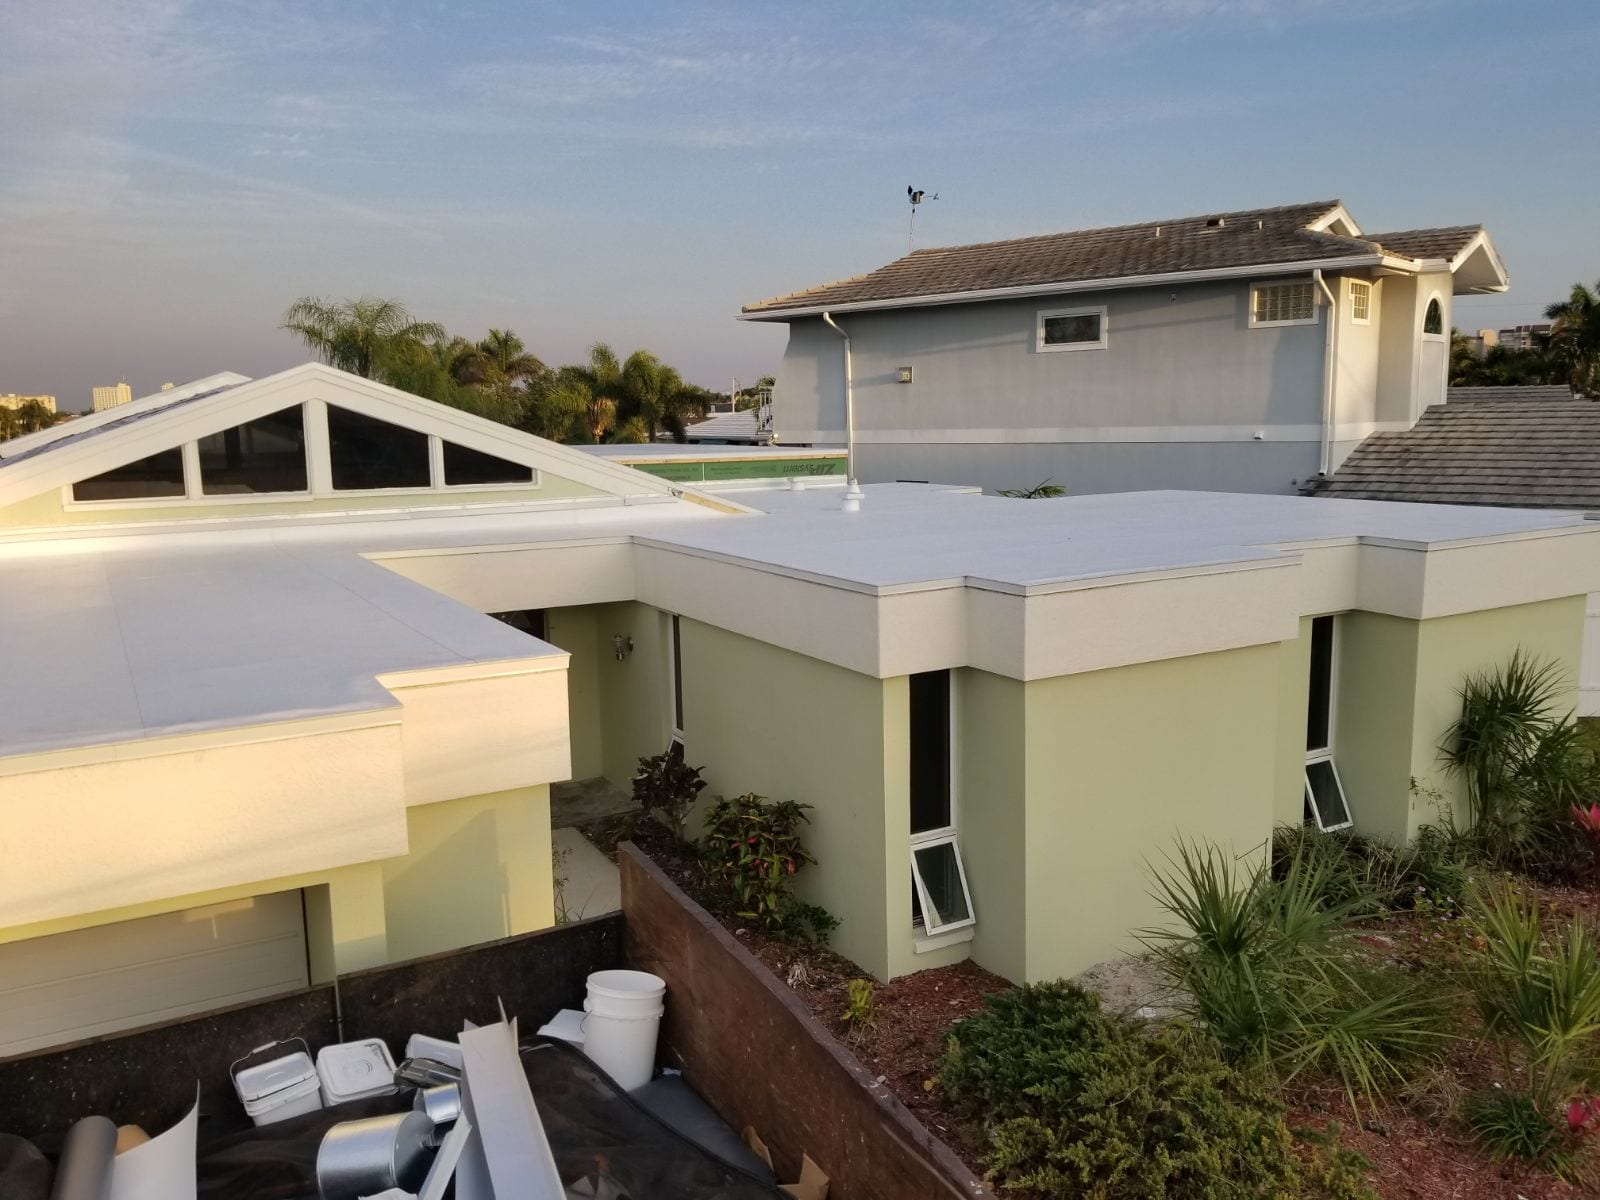 Top 4 Residential Roofs on the Market